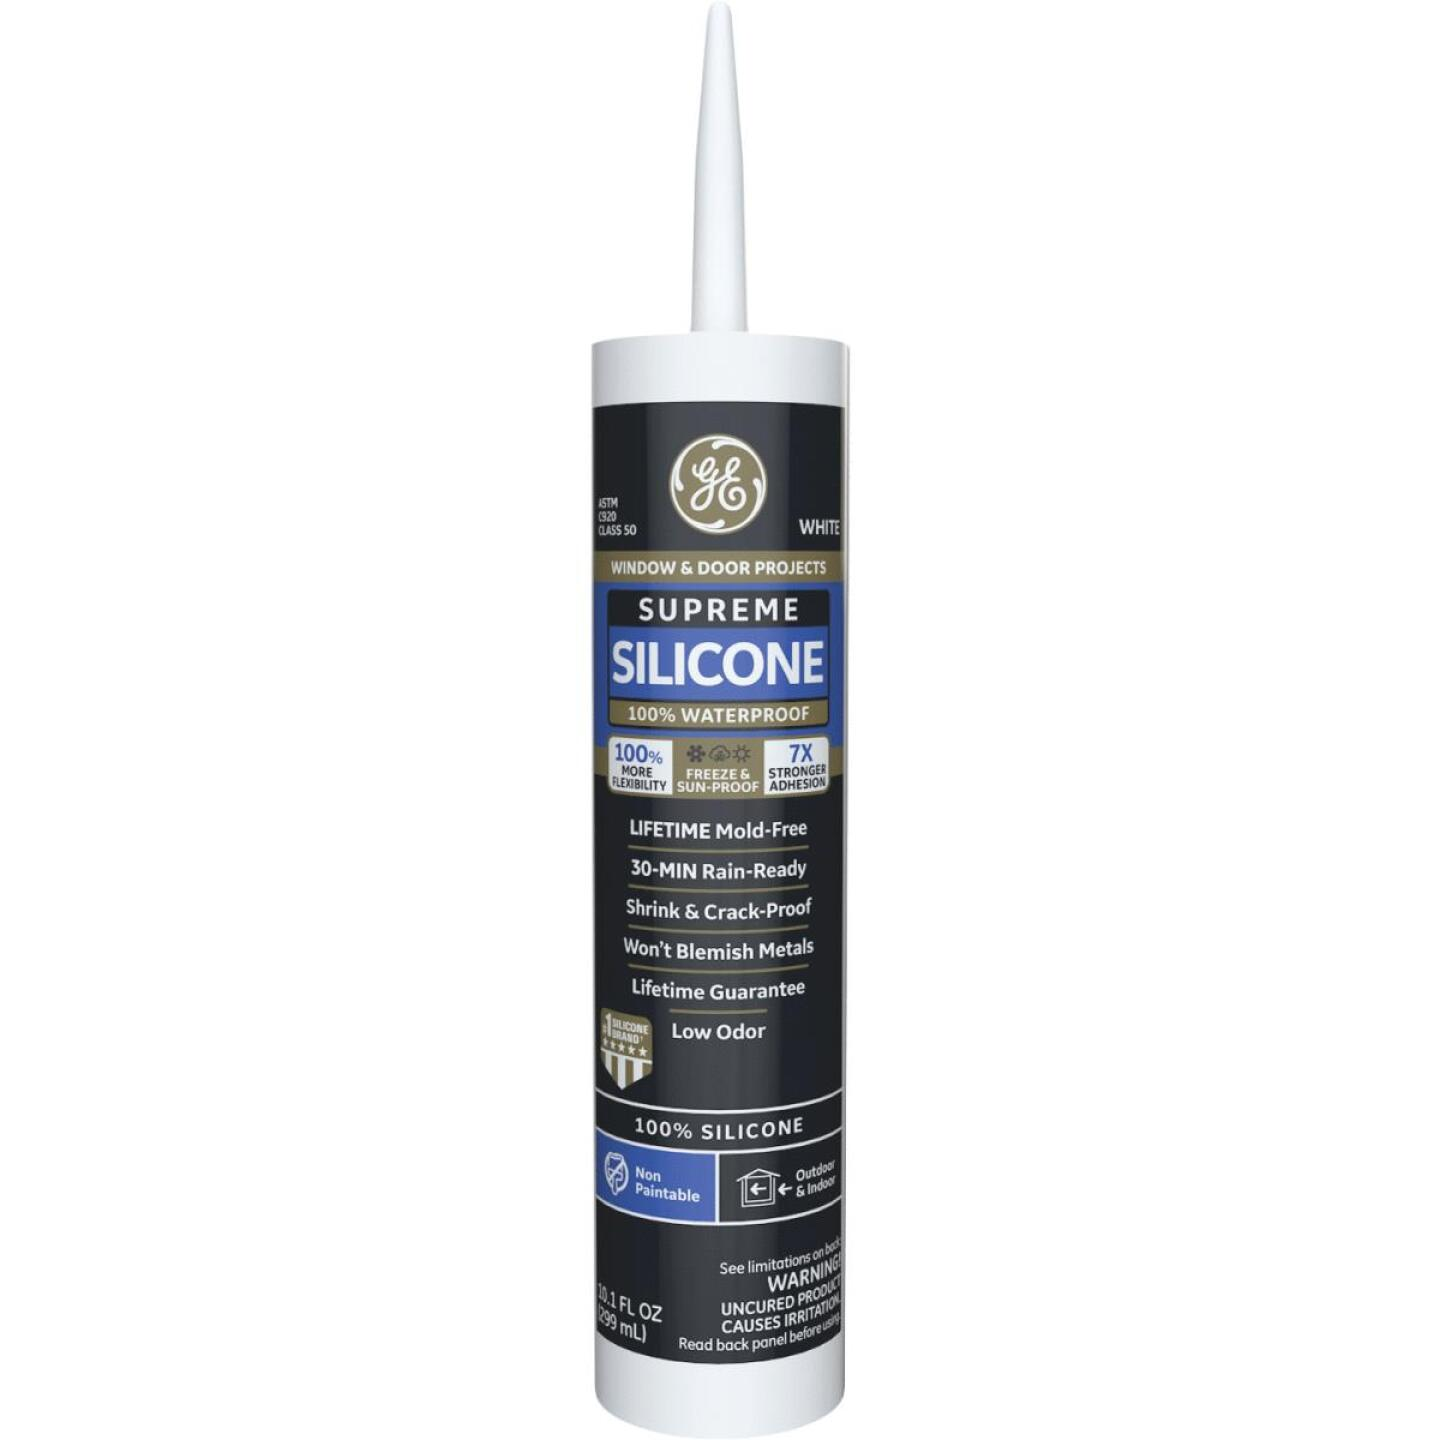 GE Supreme Silicone Window & Door Sealant, White, 10.1oz Image 1